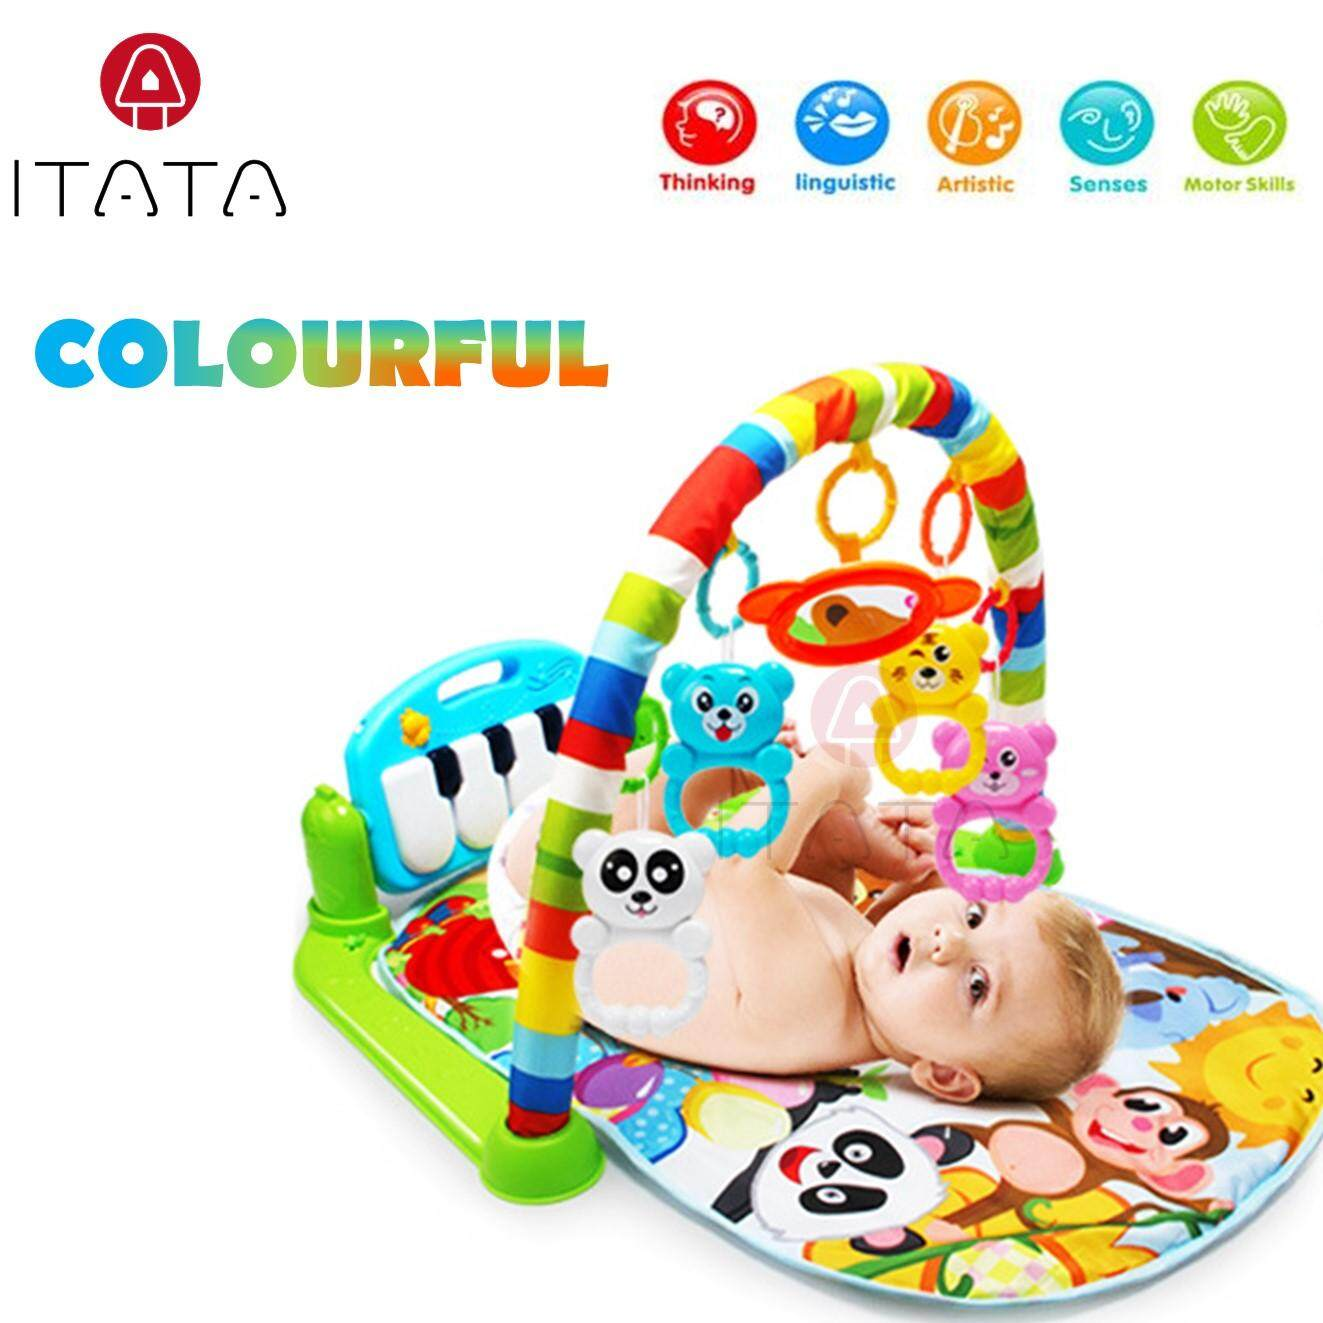 Toys Games Activity Gym Playmats Buy Farm Music Playmat Baby Toddler Colourful Musical Play Mat